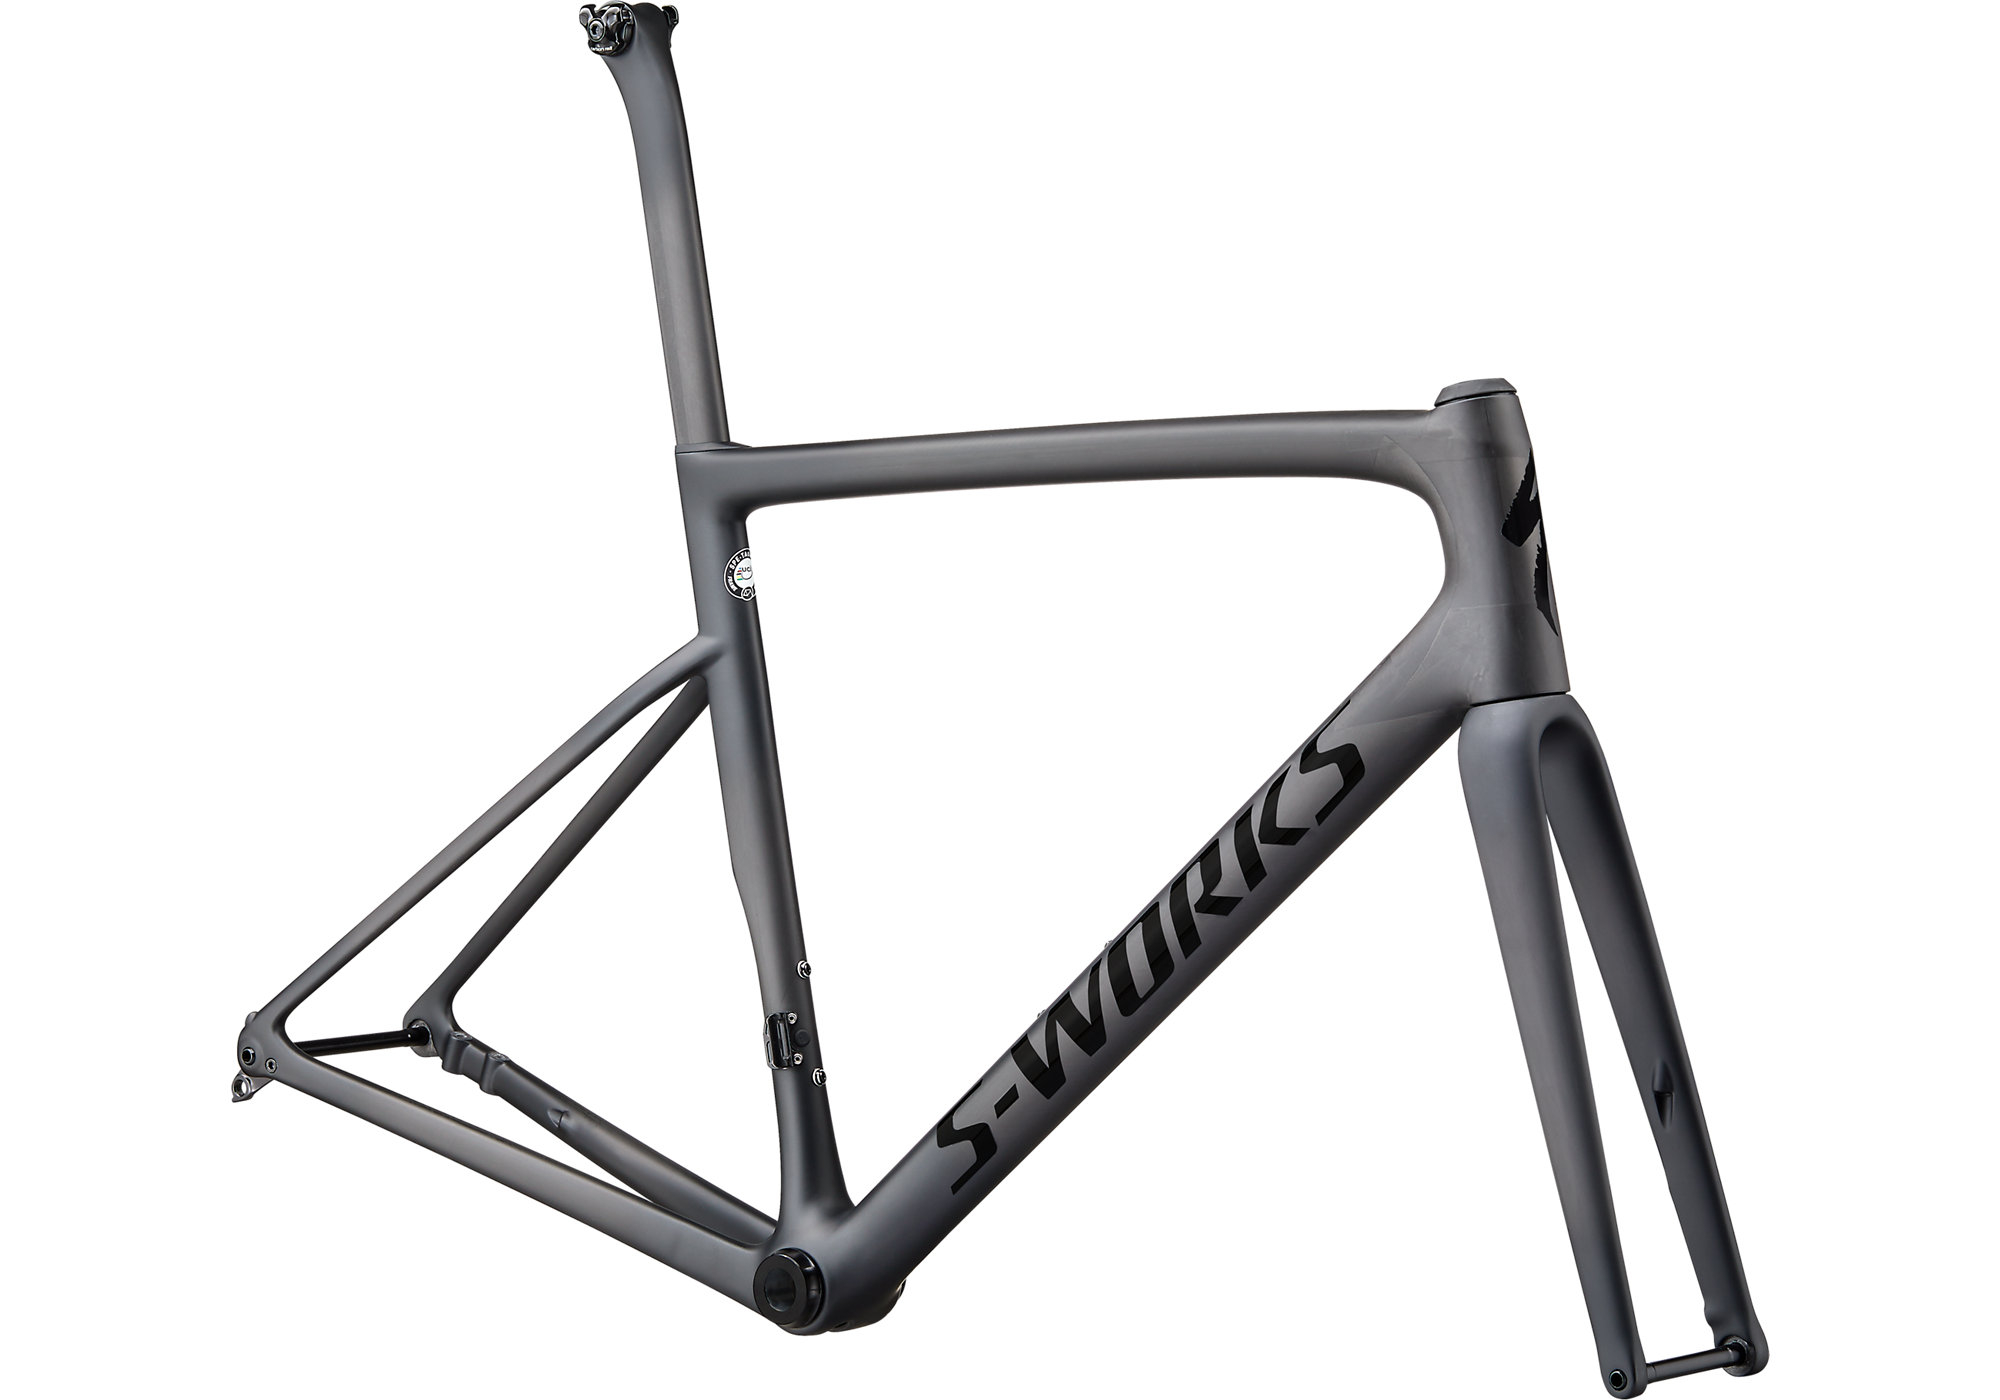 2020 Specialized S-Works Tarmac Disc Frameset